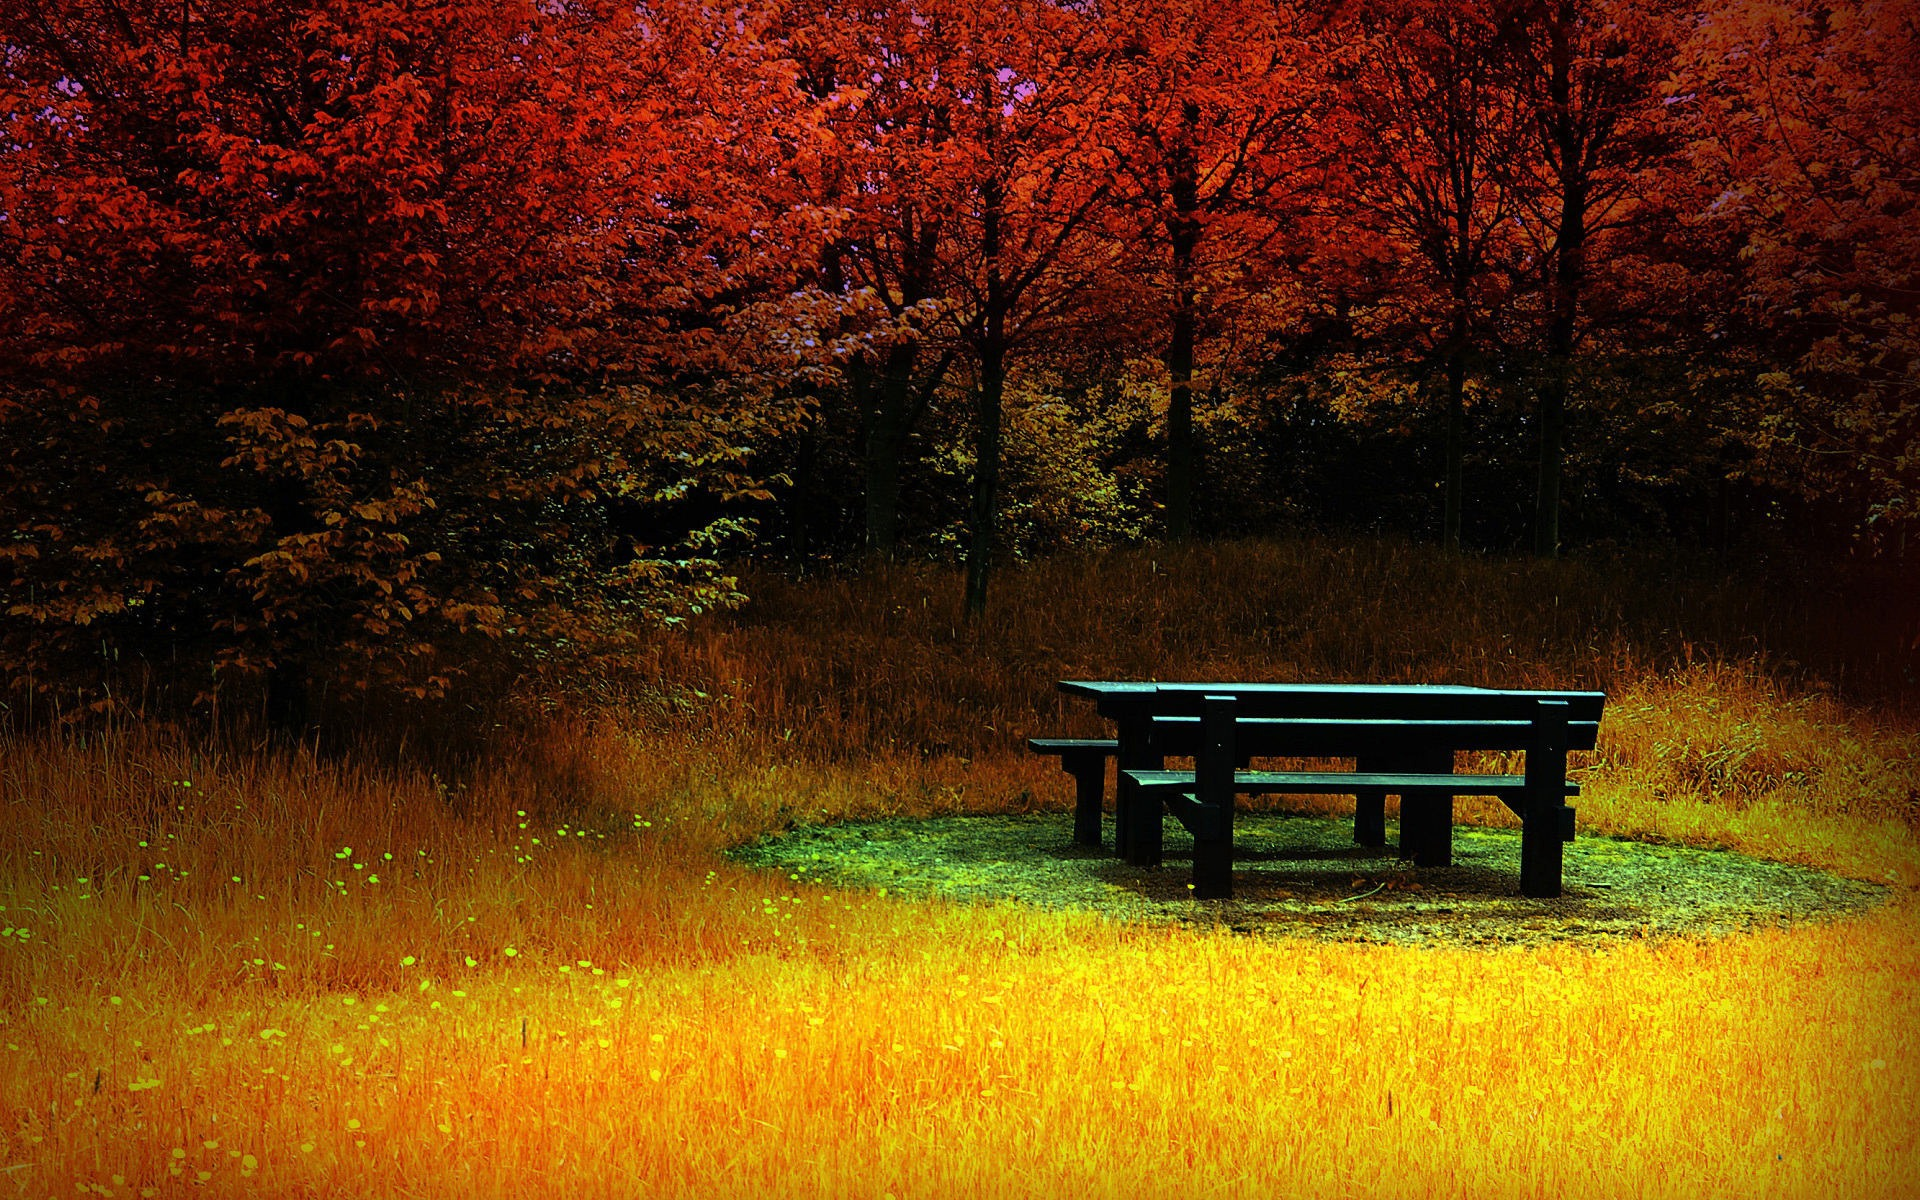 autumn wallpaper wallpapers widescreen nature fire downloadfiles 1920x1200